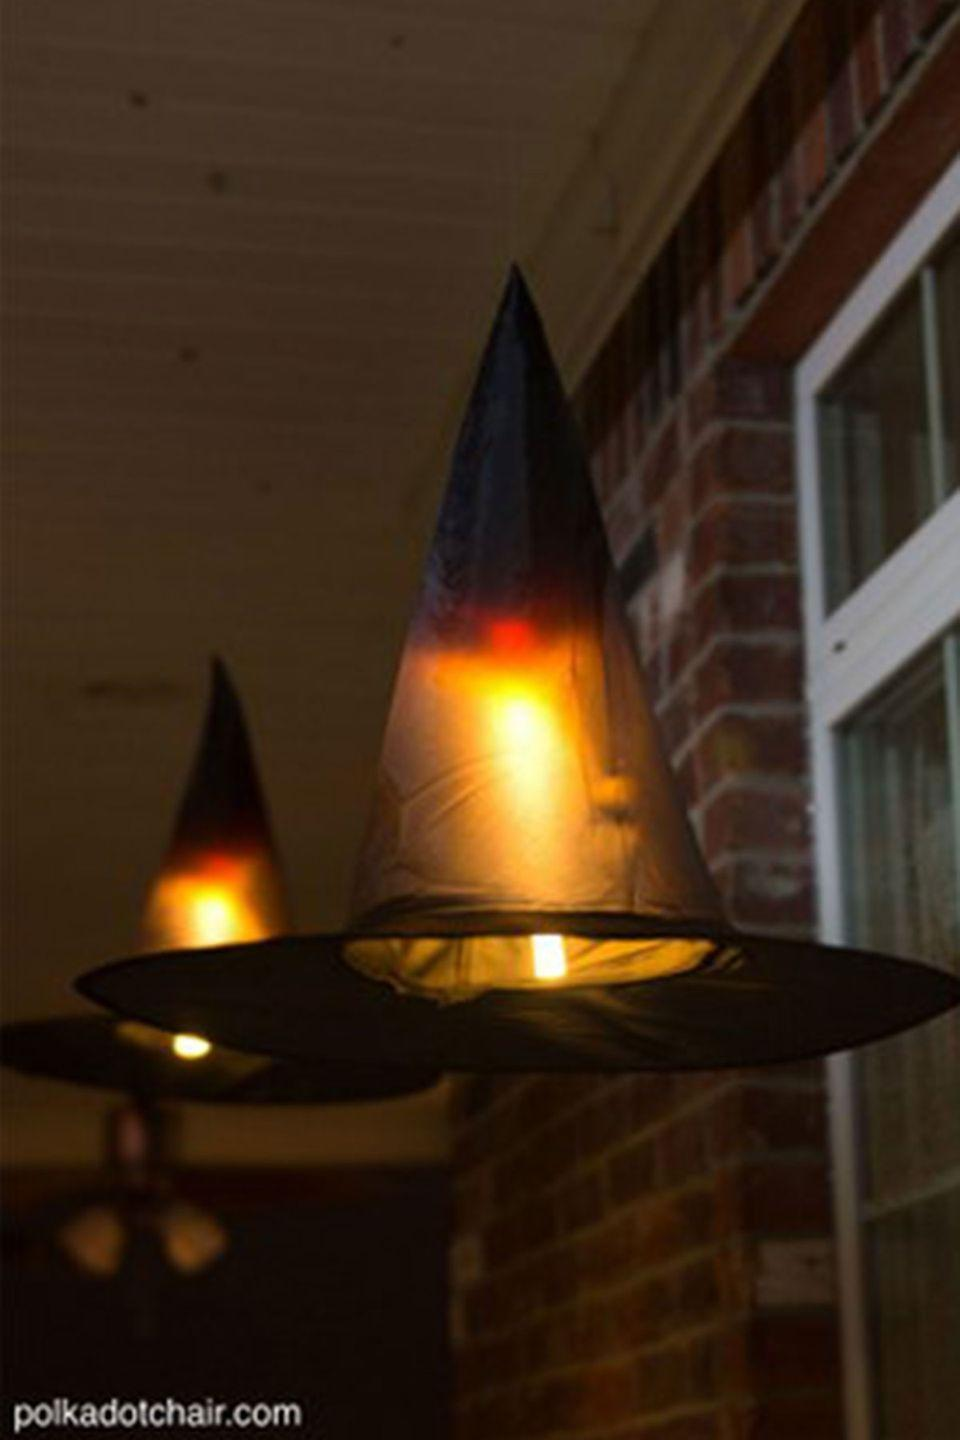 """<p>Light up the night with these magically spooky floating hats. Kids will love them! </p><p><strong>Get the tutorial at <a href=""""http://www.polkadotchair.com/2015/09/floating-witch-hat-luminaries.html/#_a5y_p=4332188"""" rel=""""nofollow noopener"""" target=""""_blank"""" data-ylk=""""slk:Polkadot Chair"""" class=""""link rapid-noclick-resp"""">Polkadot Chair</a>.</strong> </p>"""